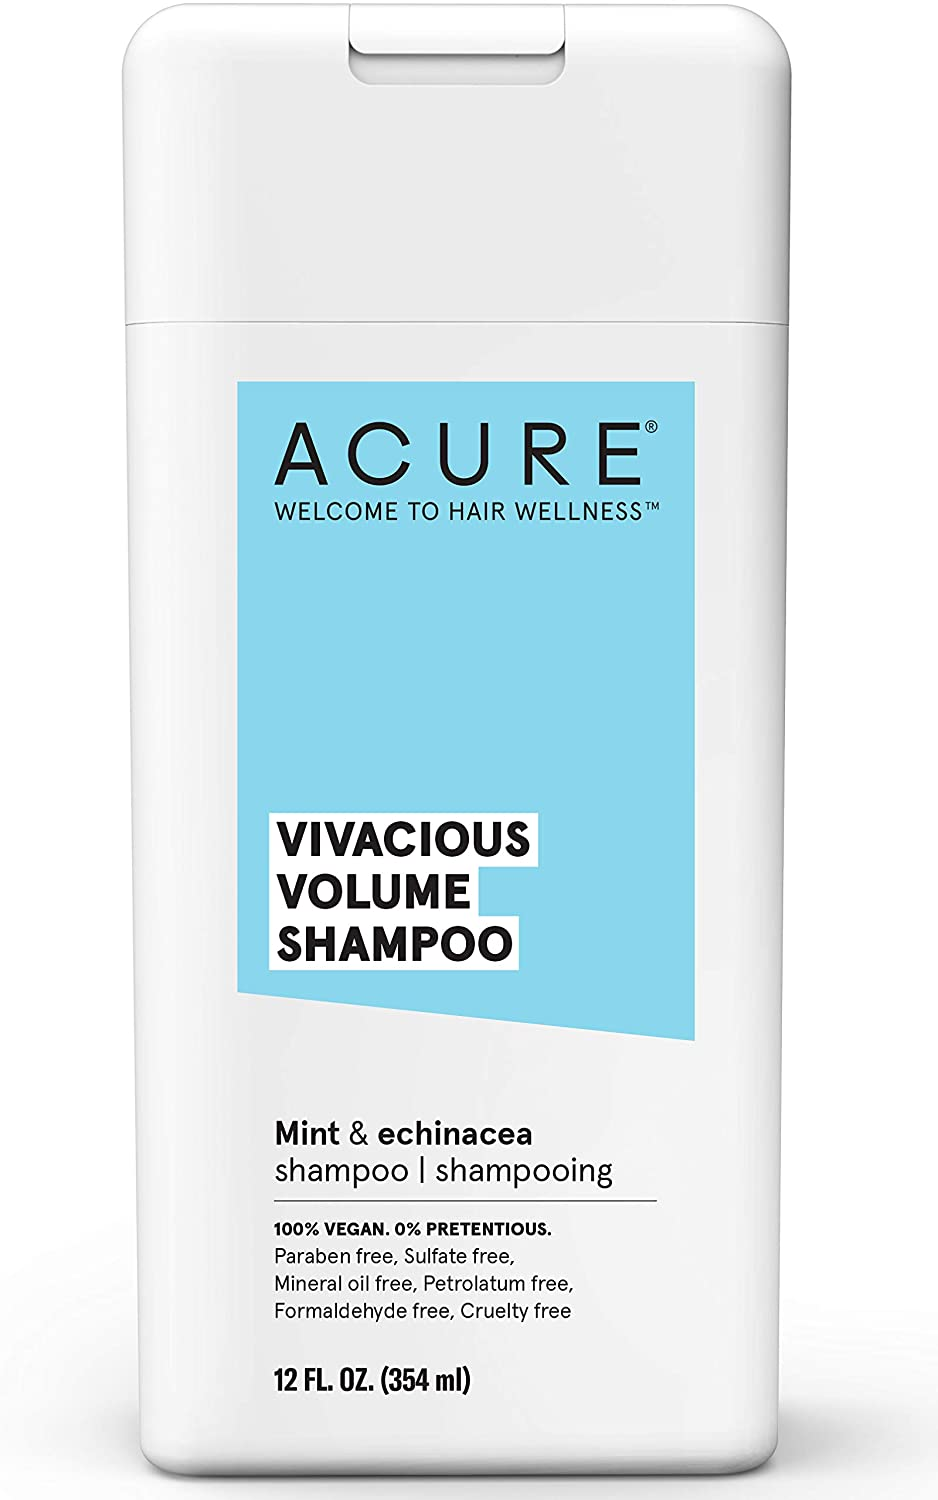 Acure Vivacious Volume Shampoo – Best Overall